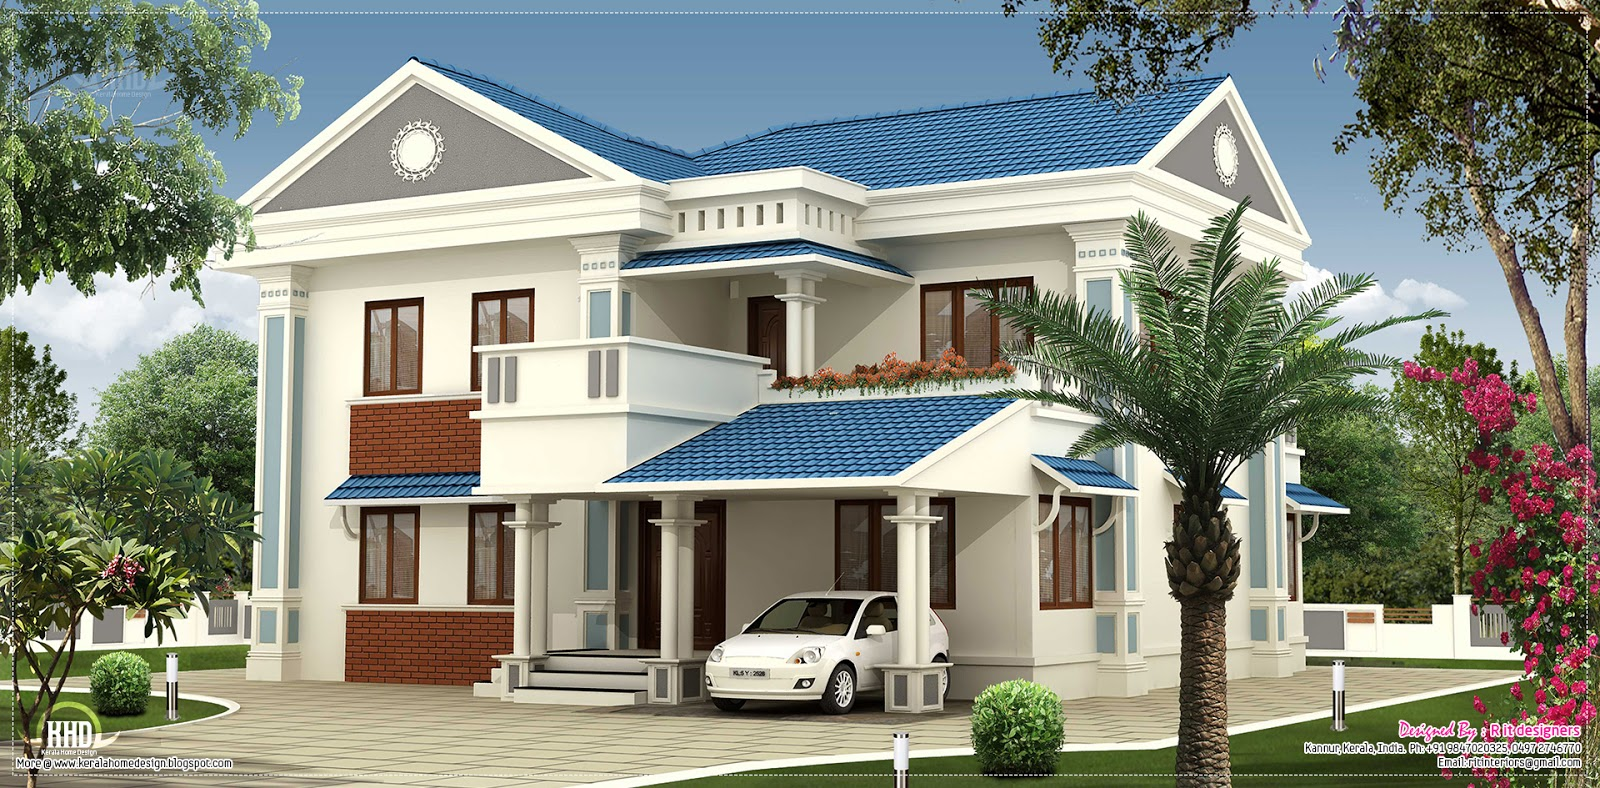 2000 beautiful villa elevation design kerala for Beautiful house plans with photos